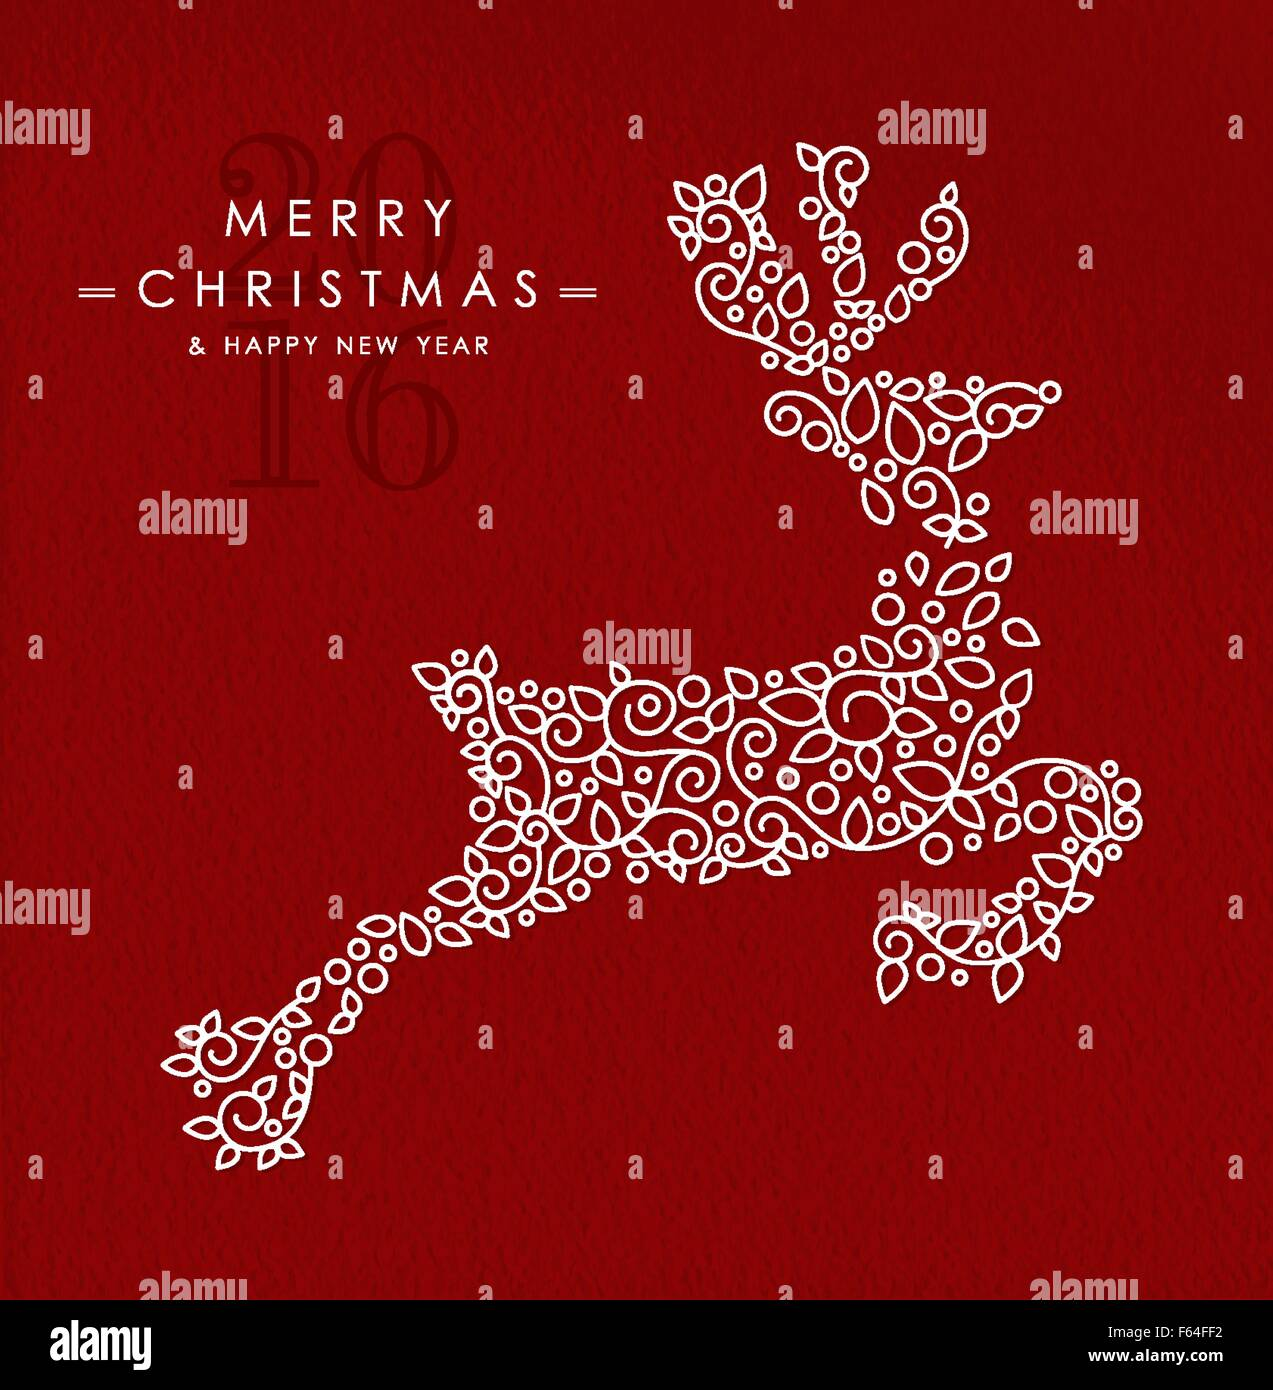 merry christmas happy new year 2016 greeting card background linear reindeer jumping with monogram decoration ornament